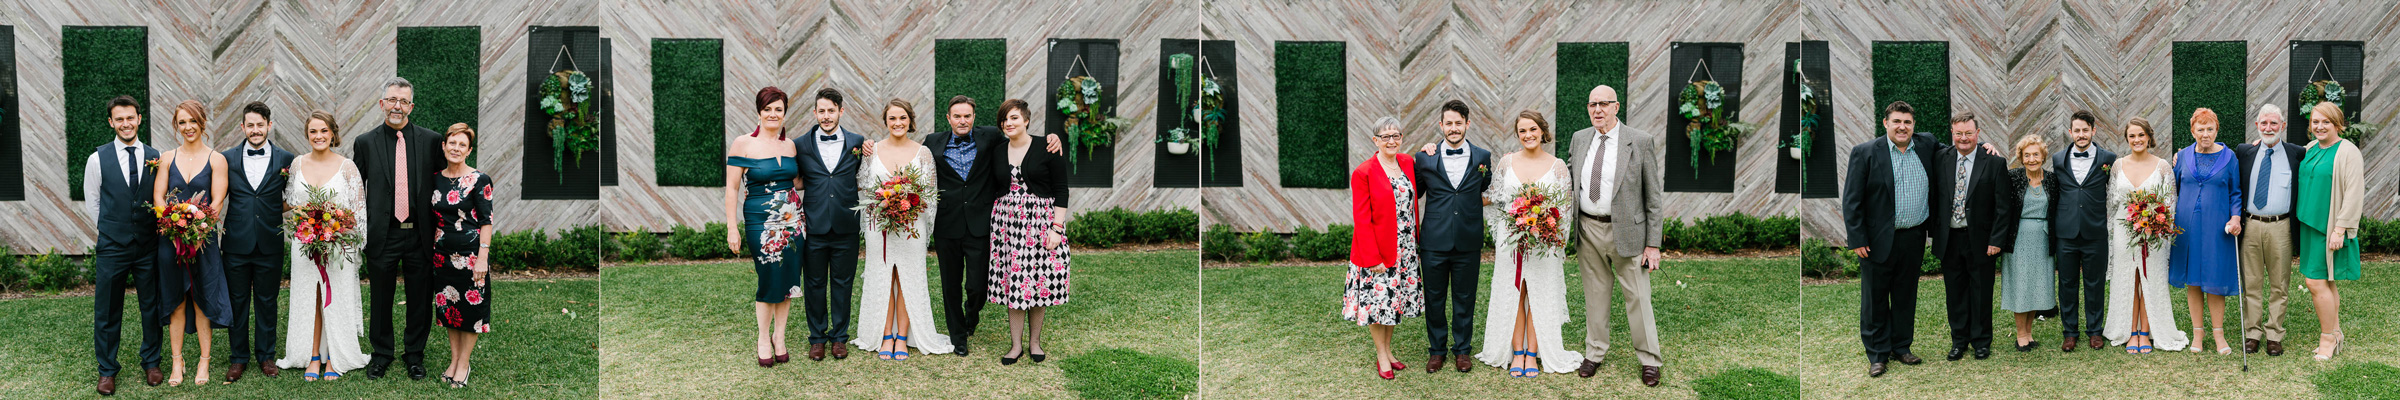 PhotographyByRenata-Colourful-Central-Coast-Wedding-Going-to-Gracelands-309.jpg